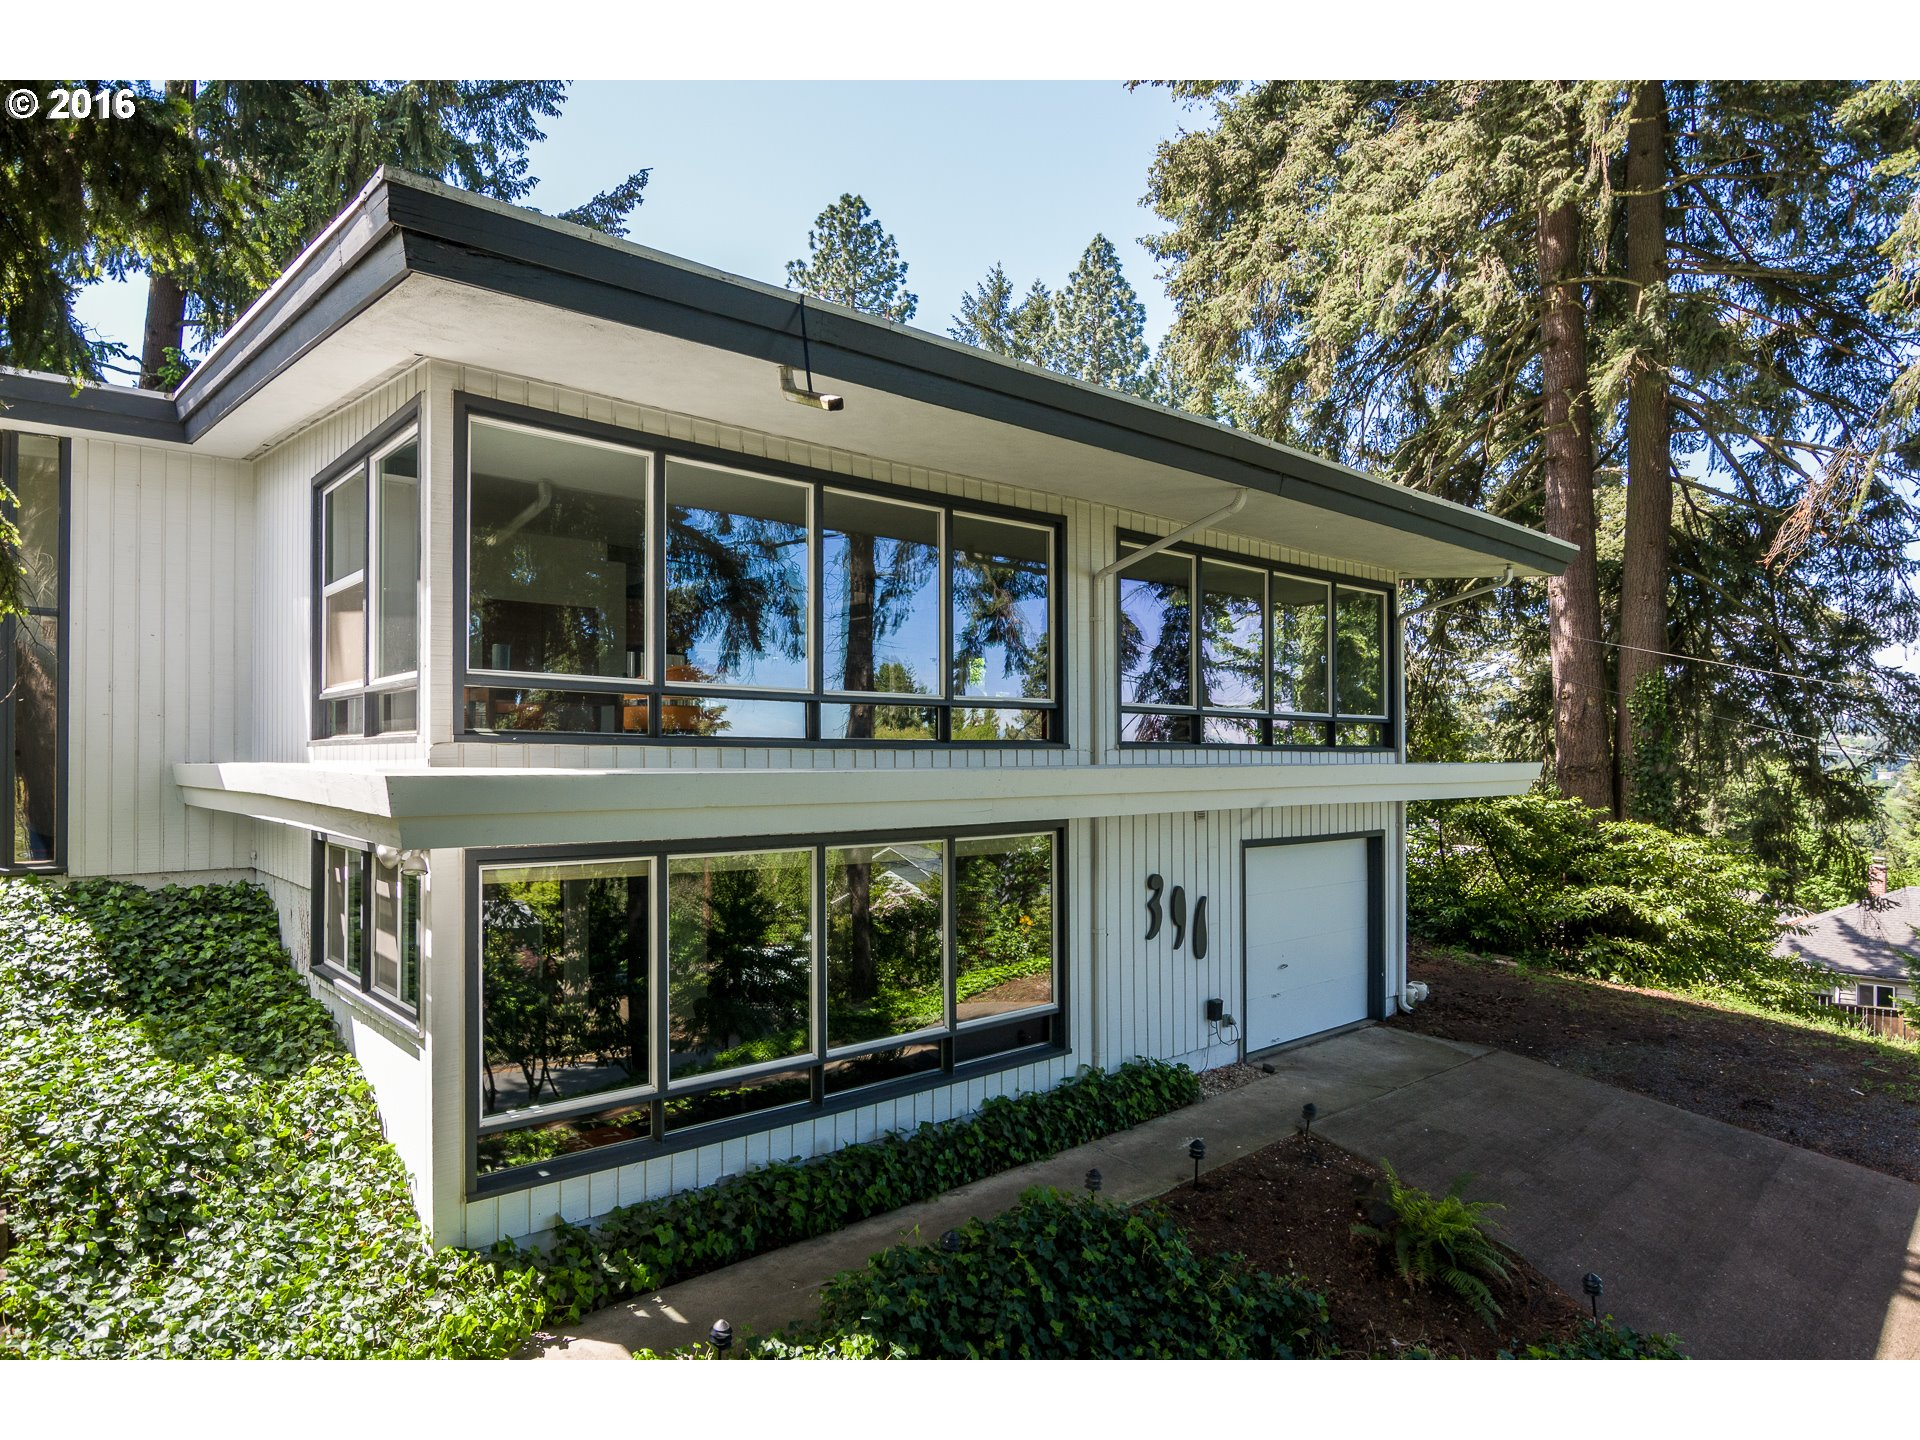 390 W 23rd Ave, Eugene, OR